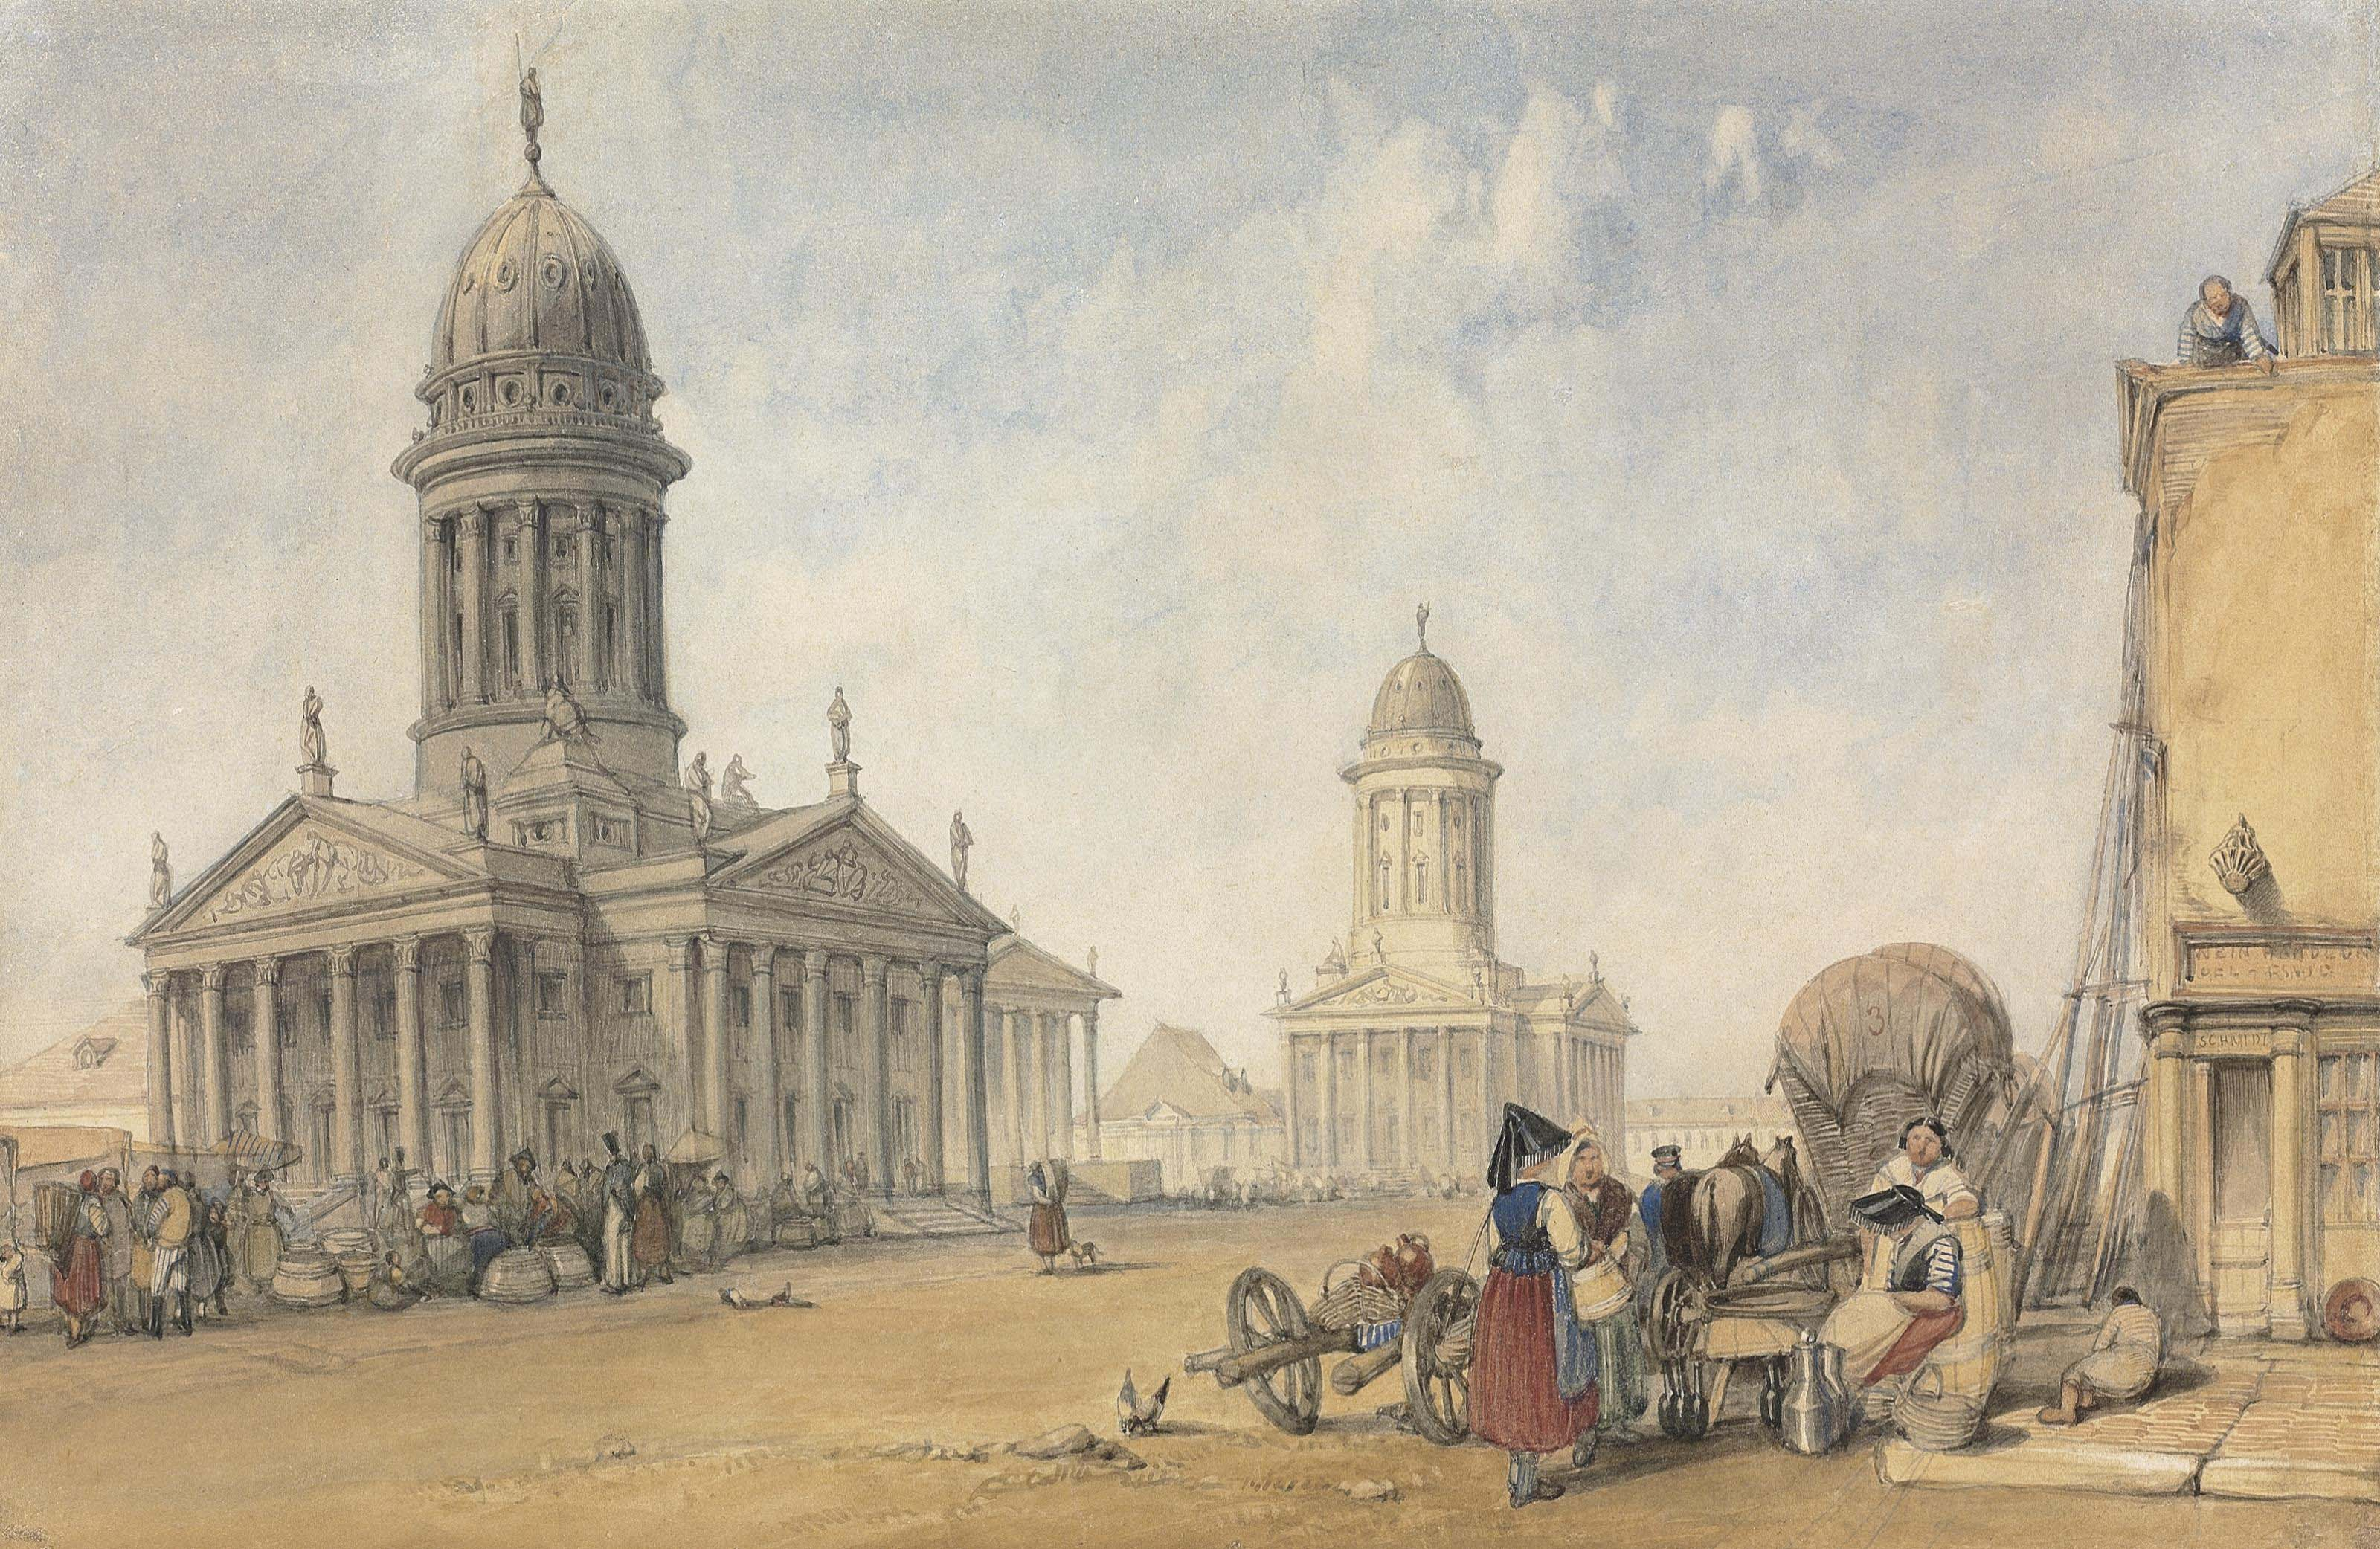 The Gendarmenmarkt, Berlin showing the French and German Cathedrals